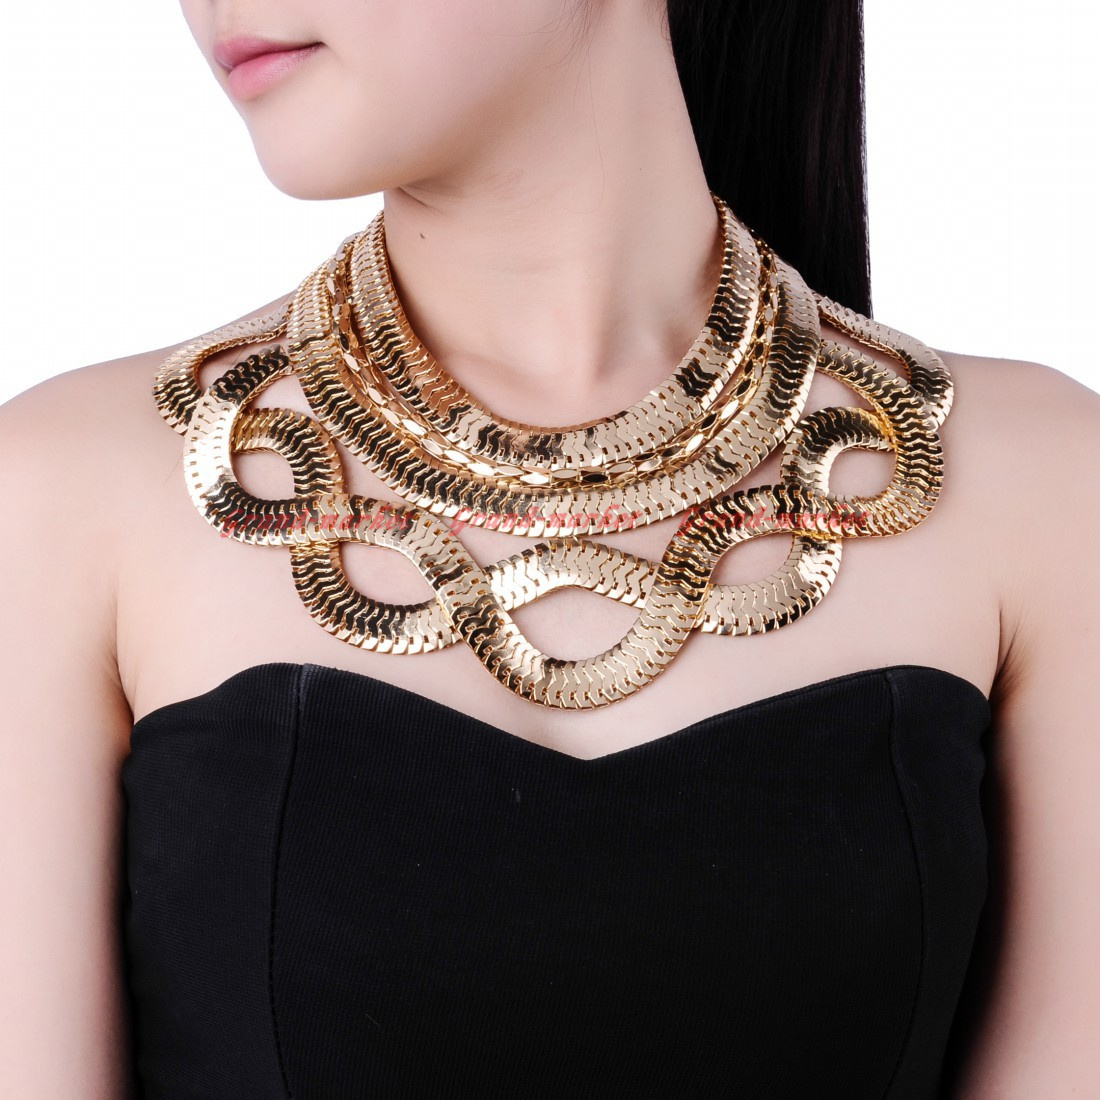 fashion jewelry gold snake chain chunky choker statement. Black Bedroom Furniture Sets. Home Design Ideas